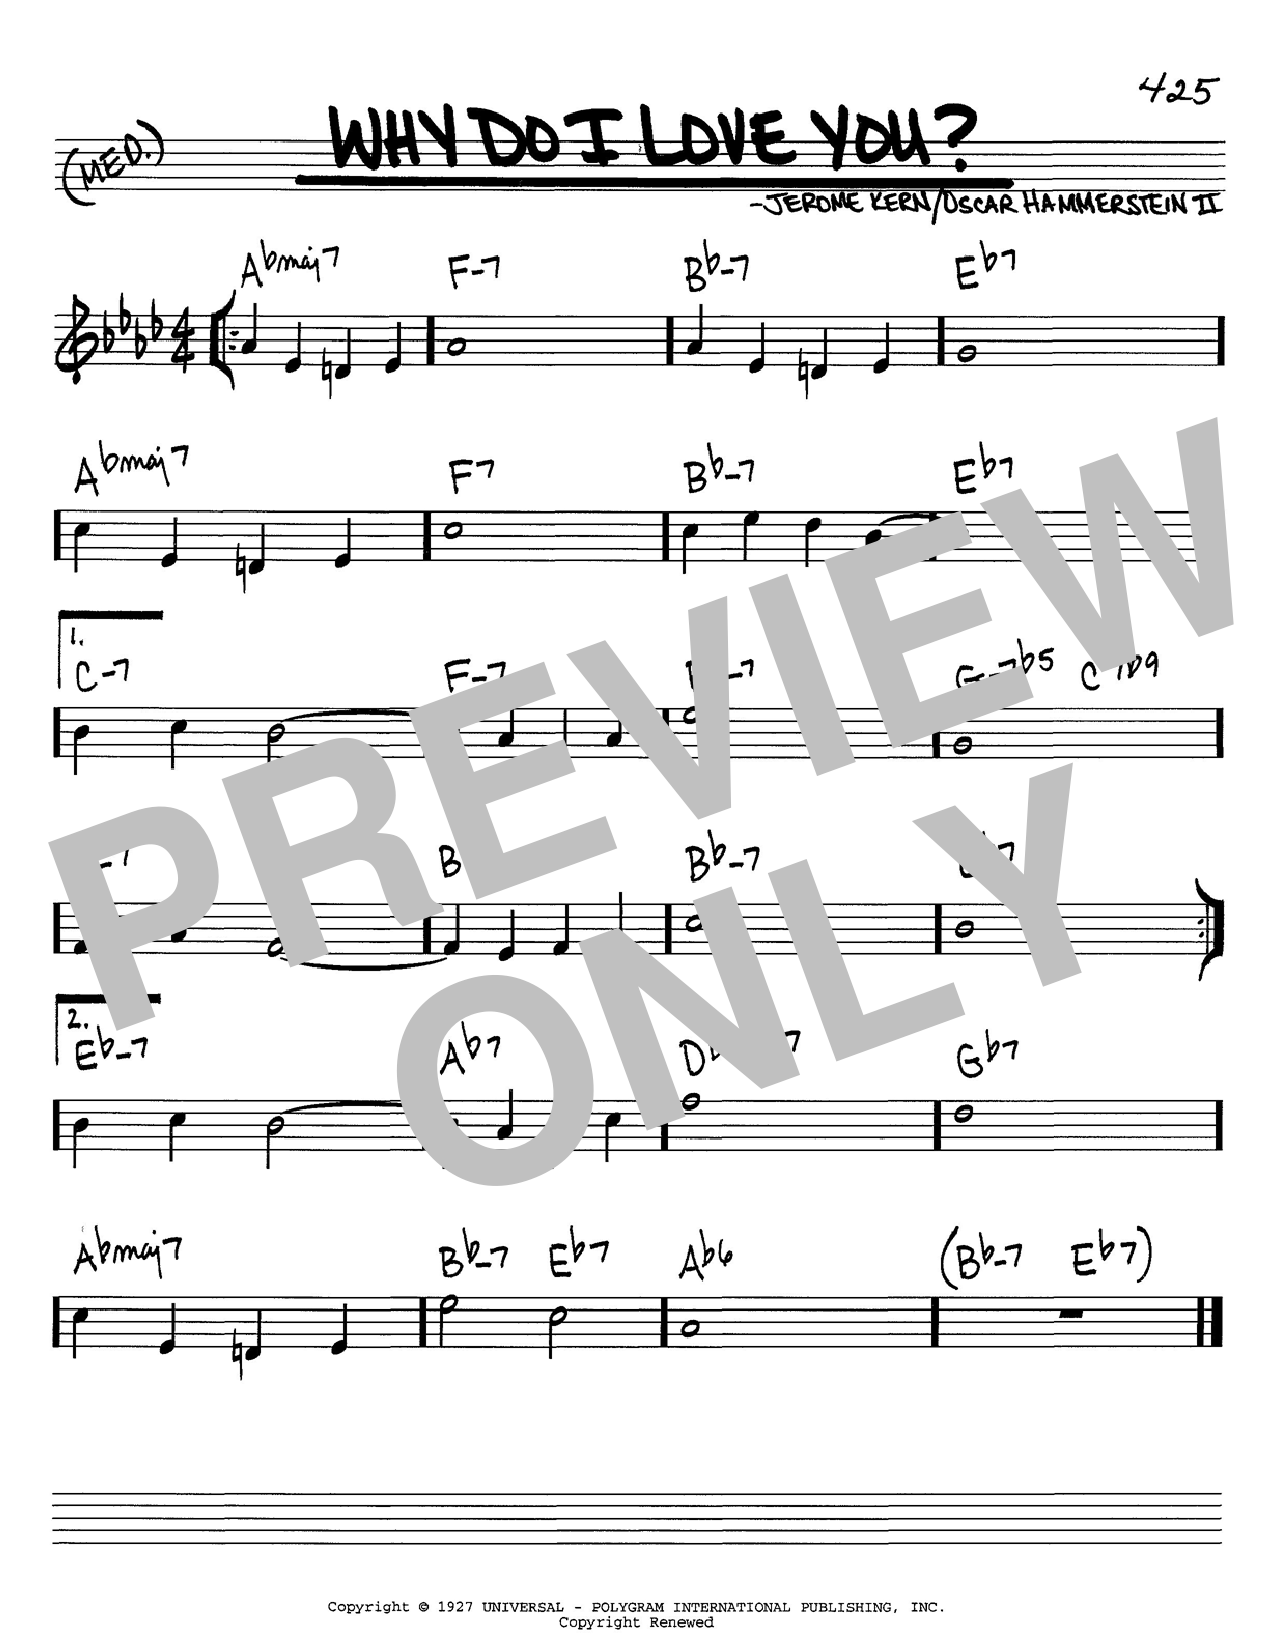 Jerome Kern Why Do I Love You? sheet music preview music notes and score for Piano, Vocal & Guitar (Right-Hand Melody) including 4 page(s)